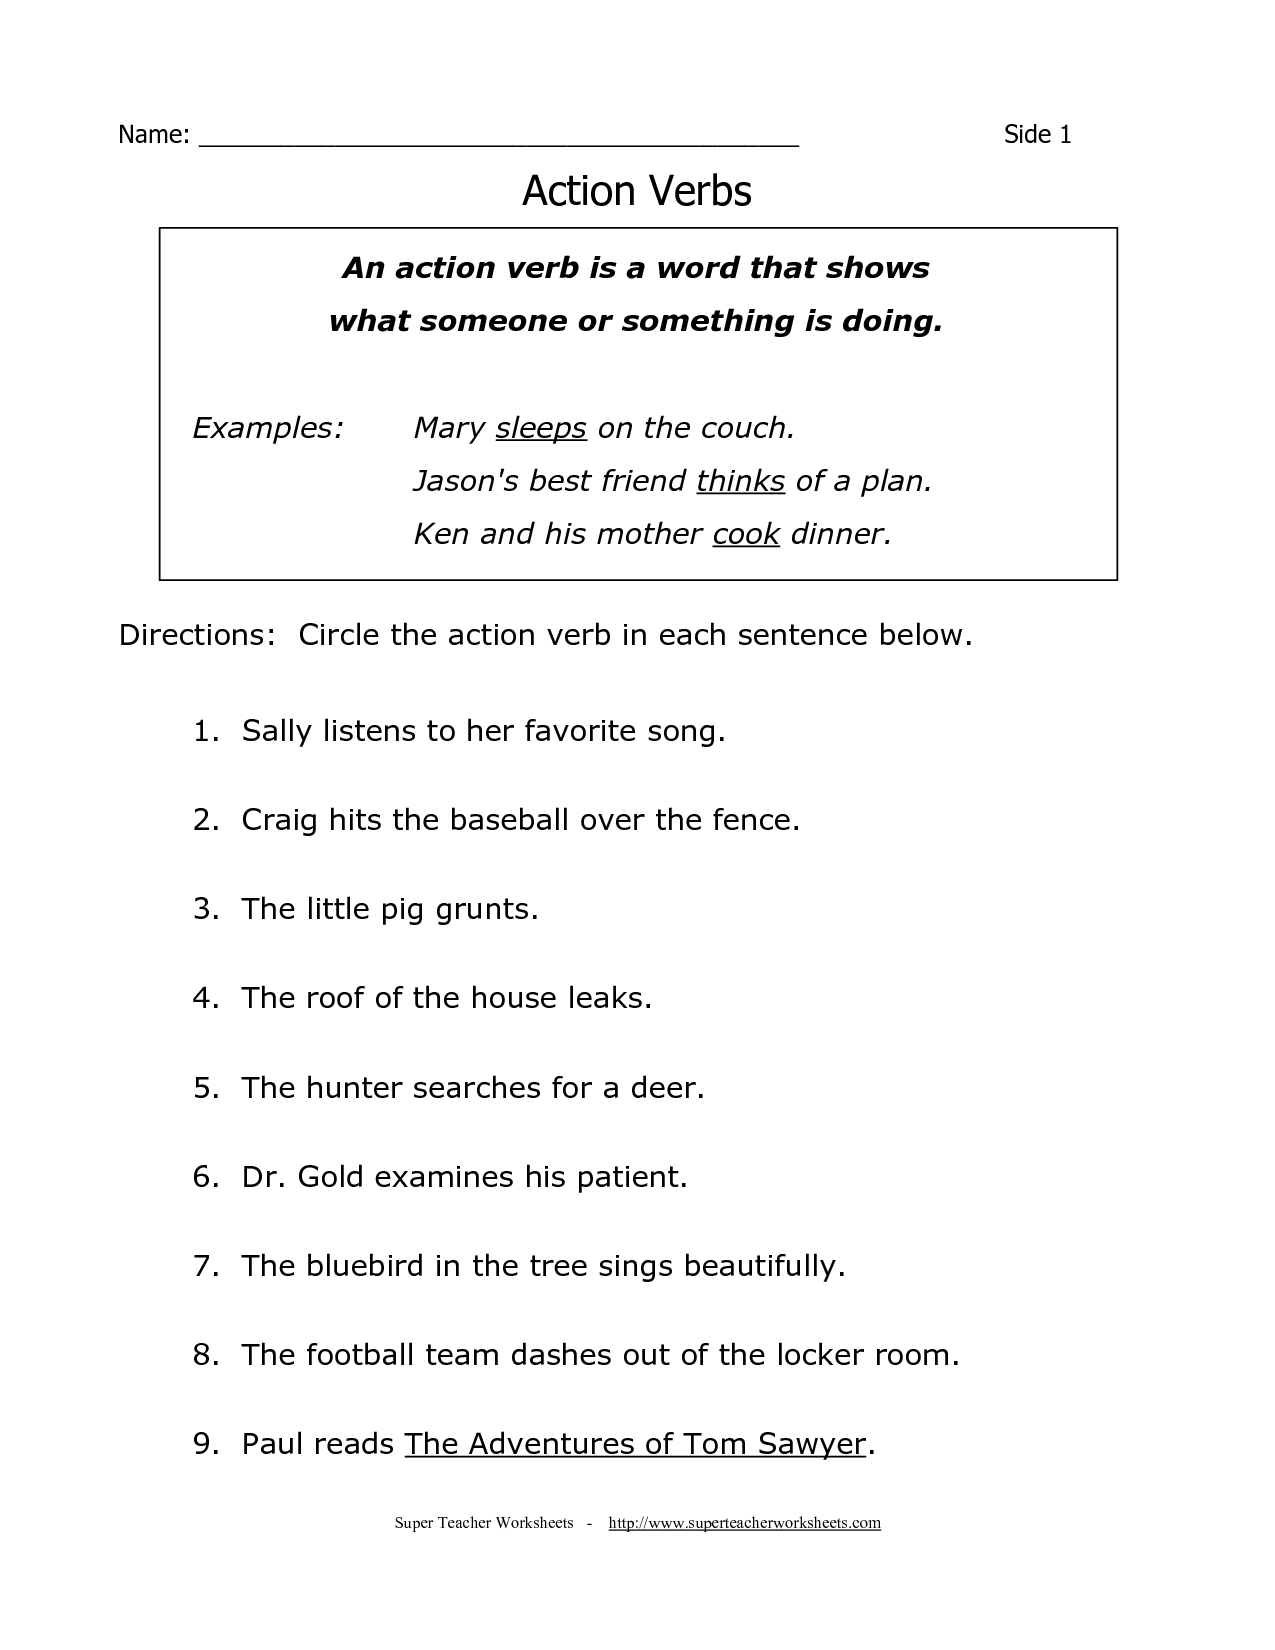 Grade 5 English Worksheets South Africa - Guided Reading Worksheets